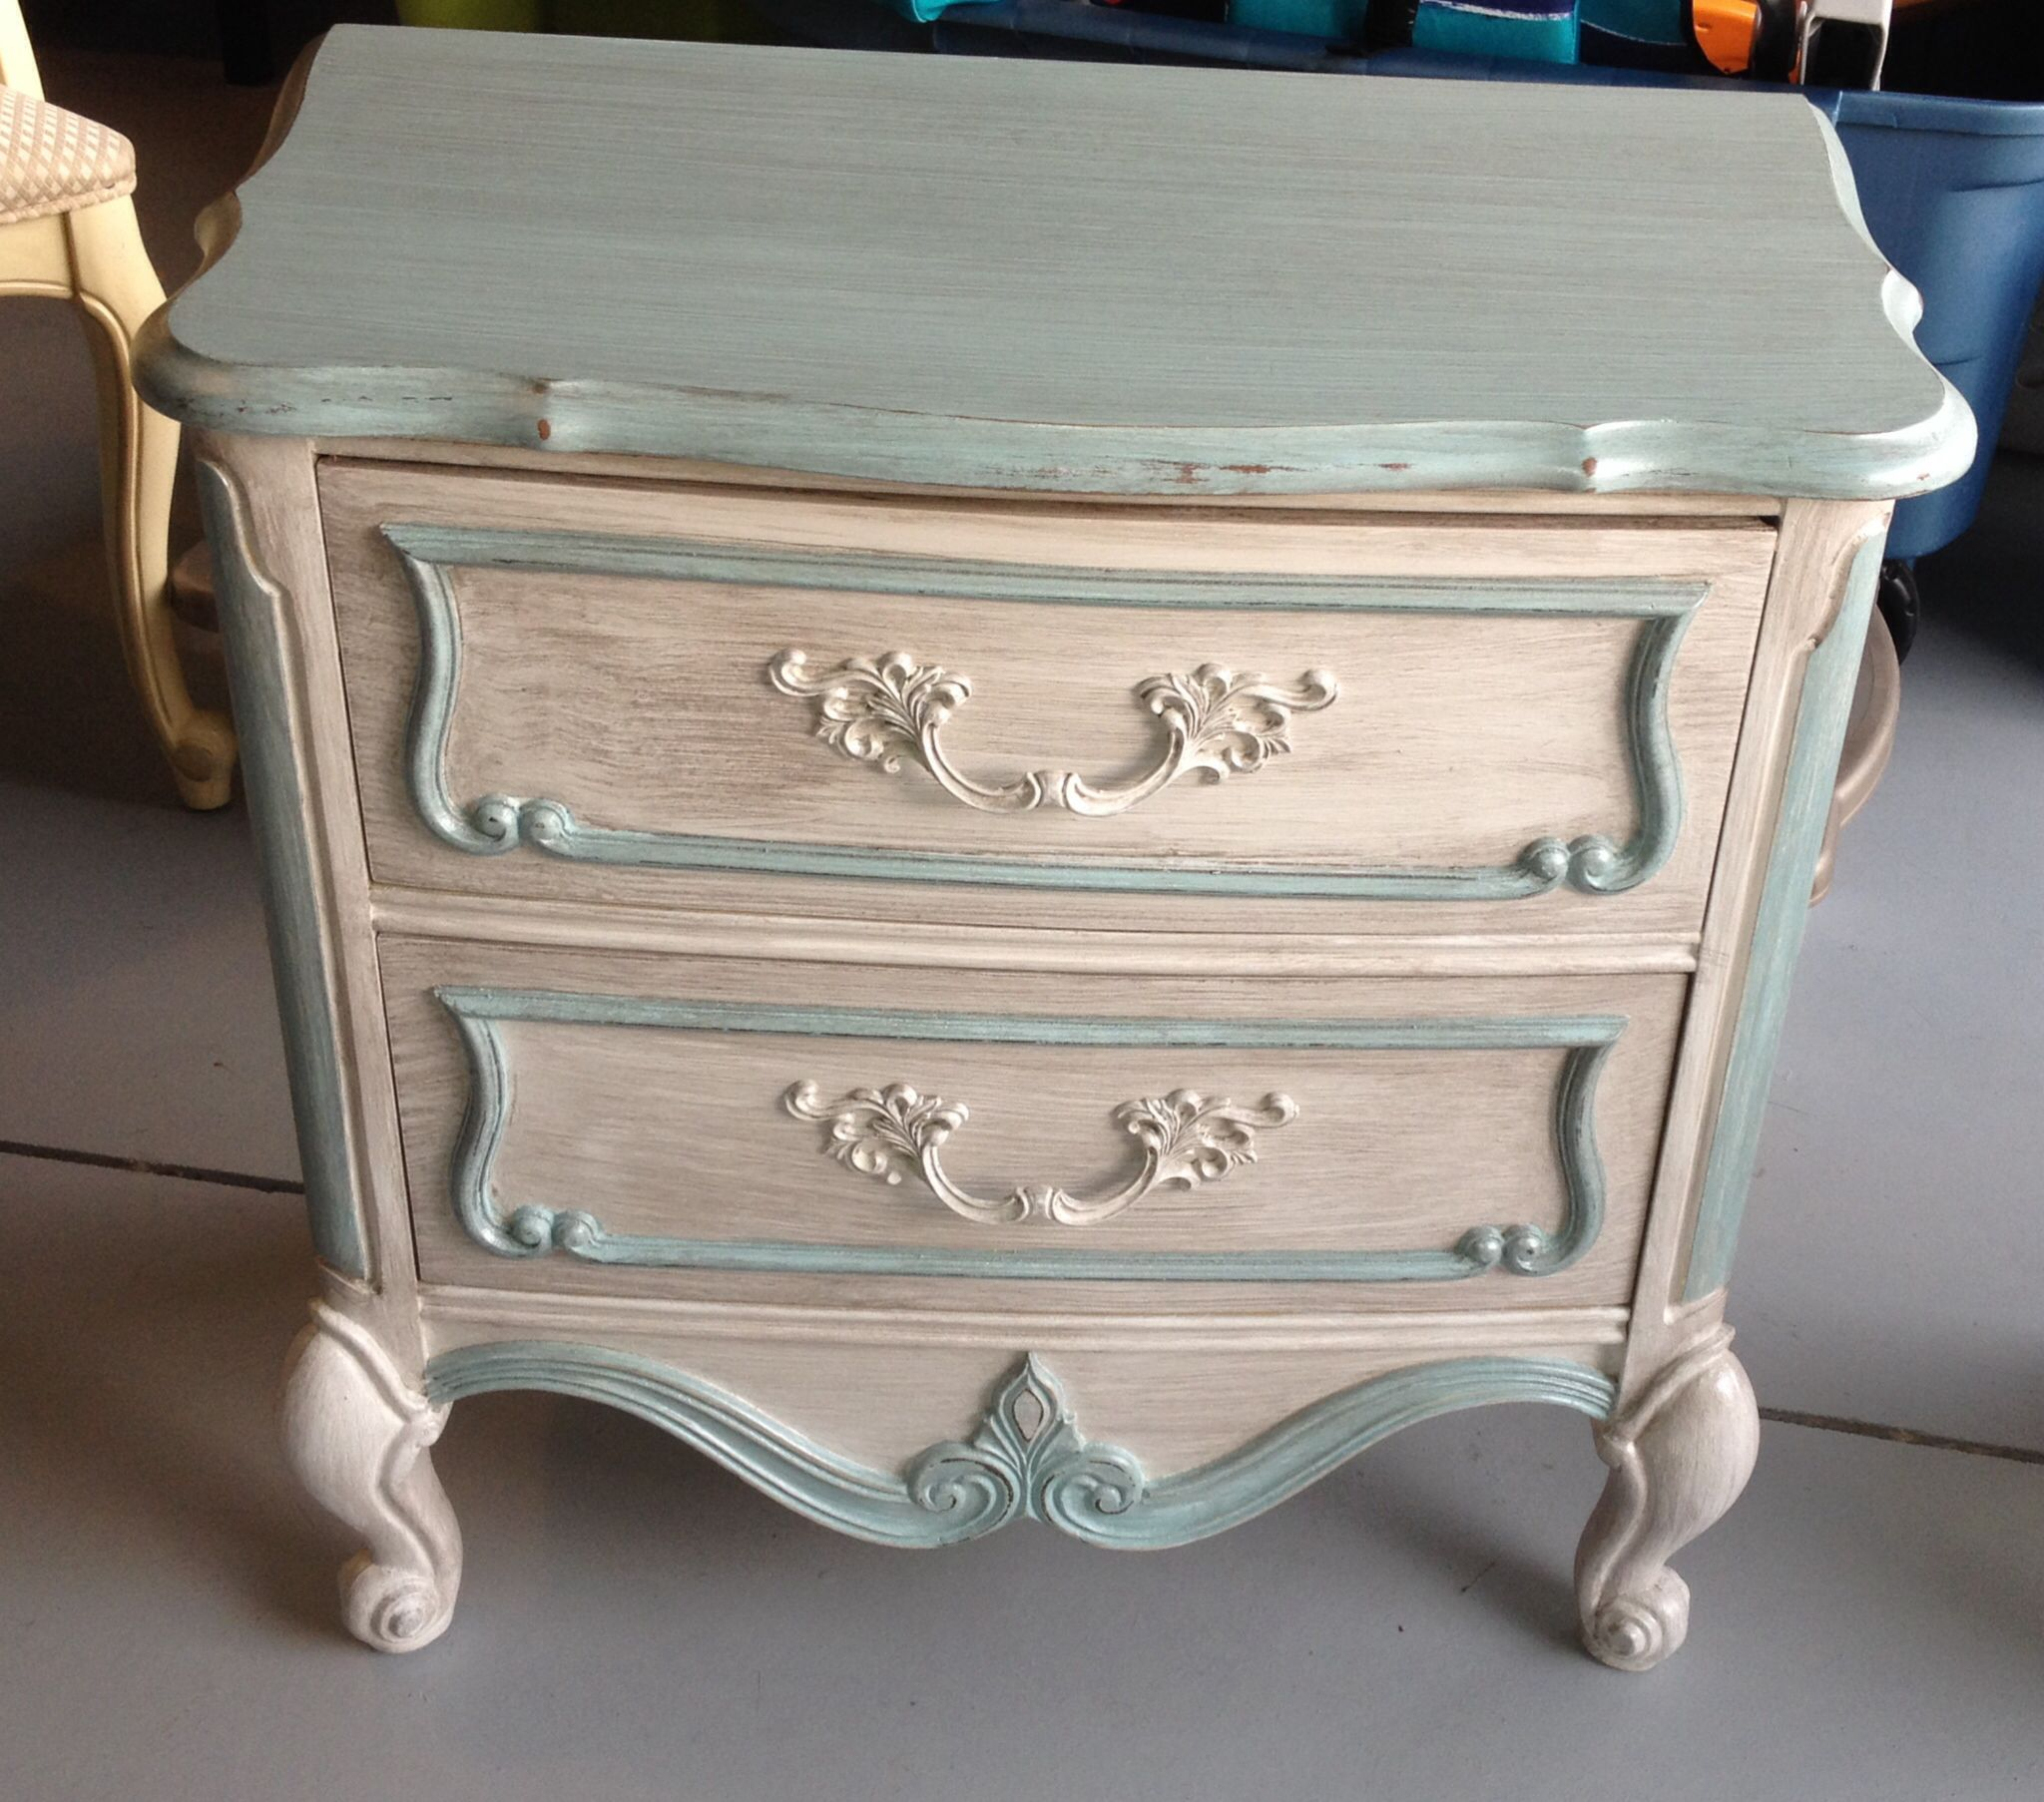 Repainted furniture Repurposed stuff Pinterest